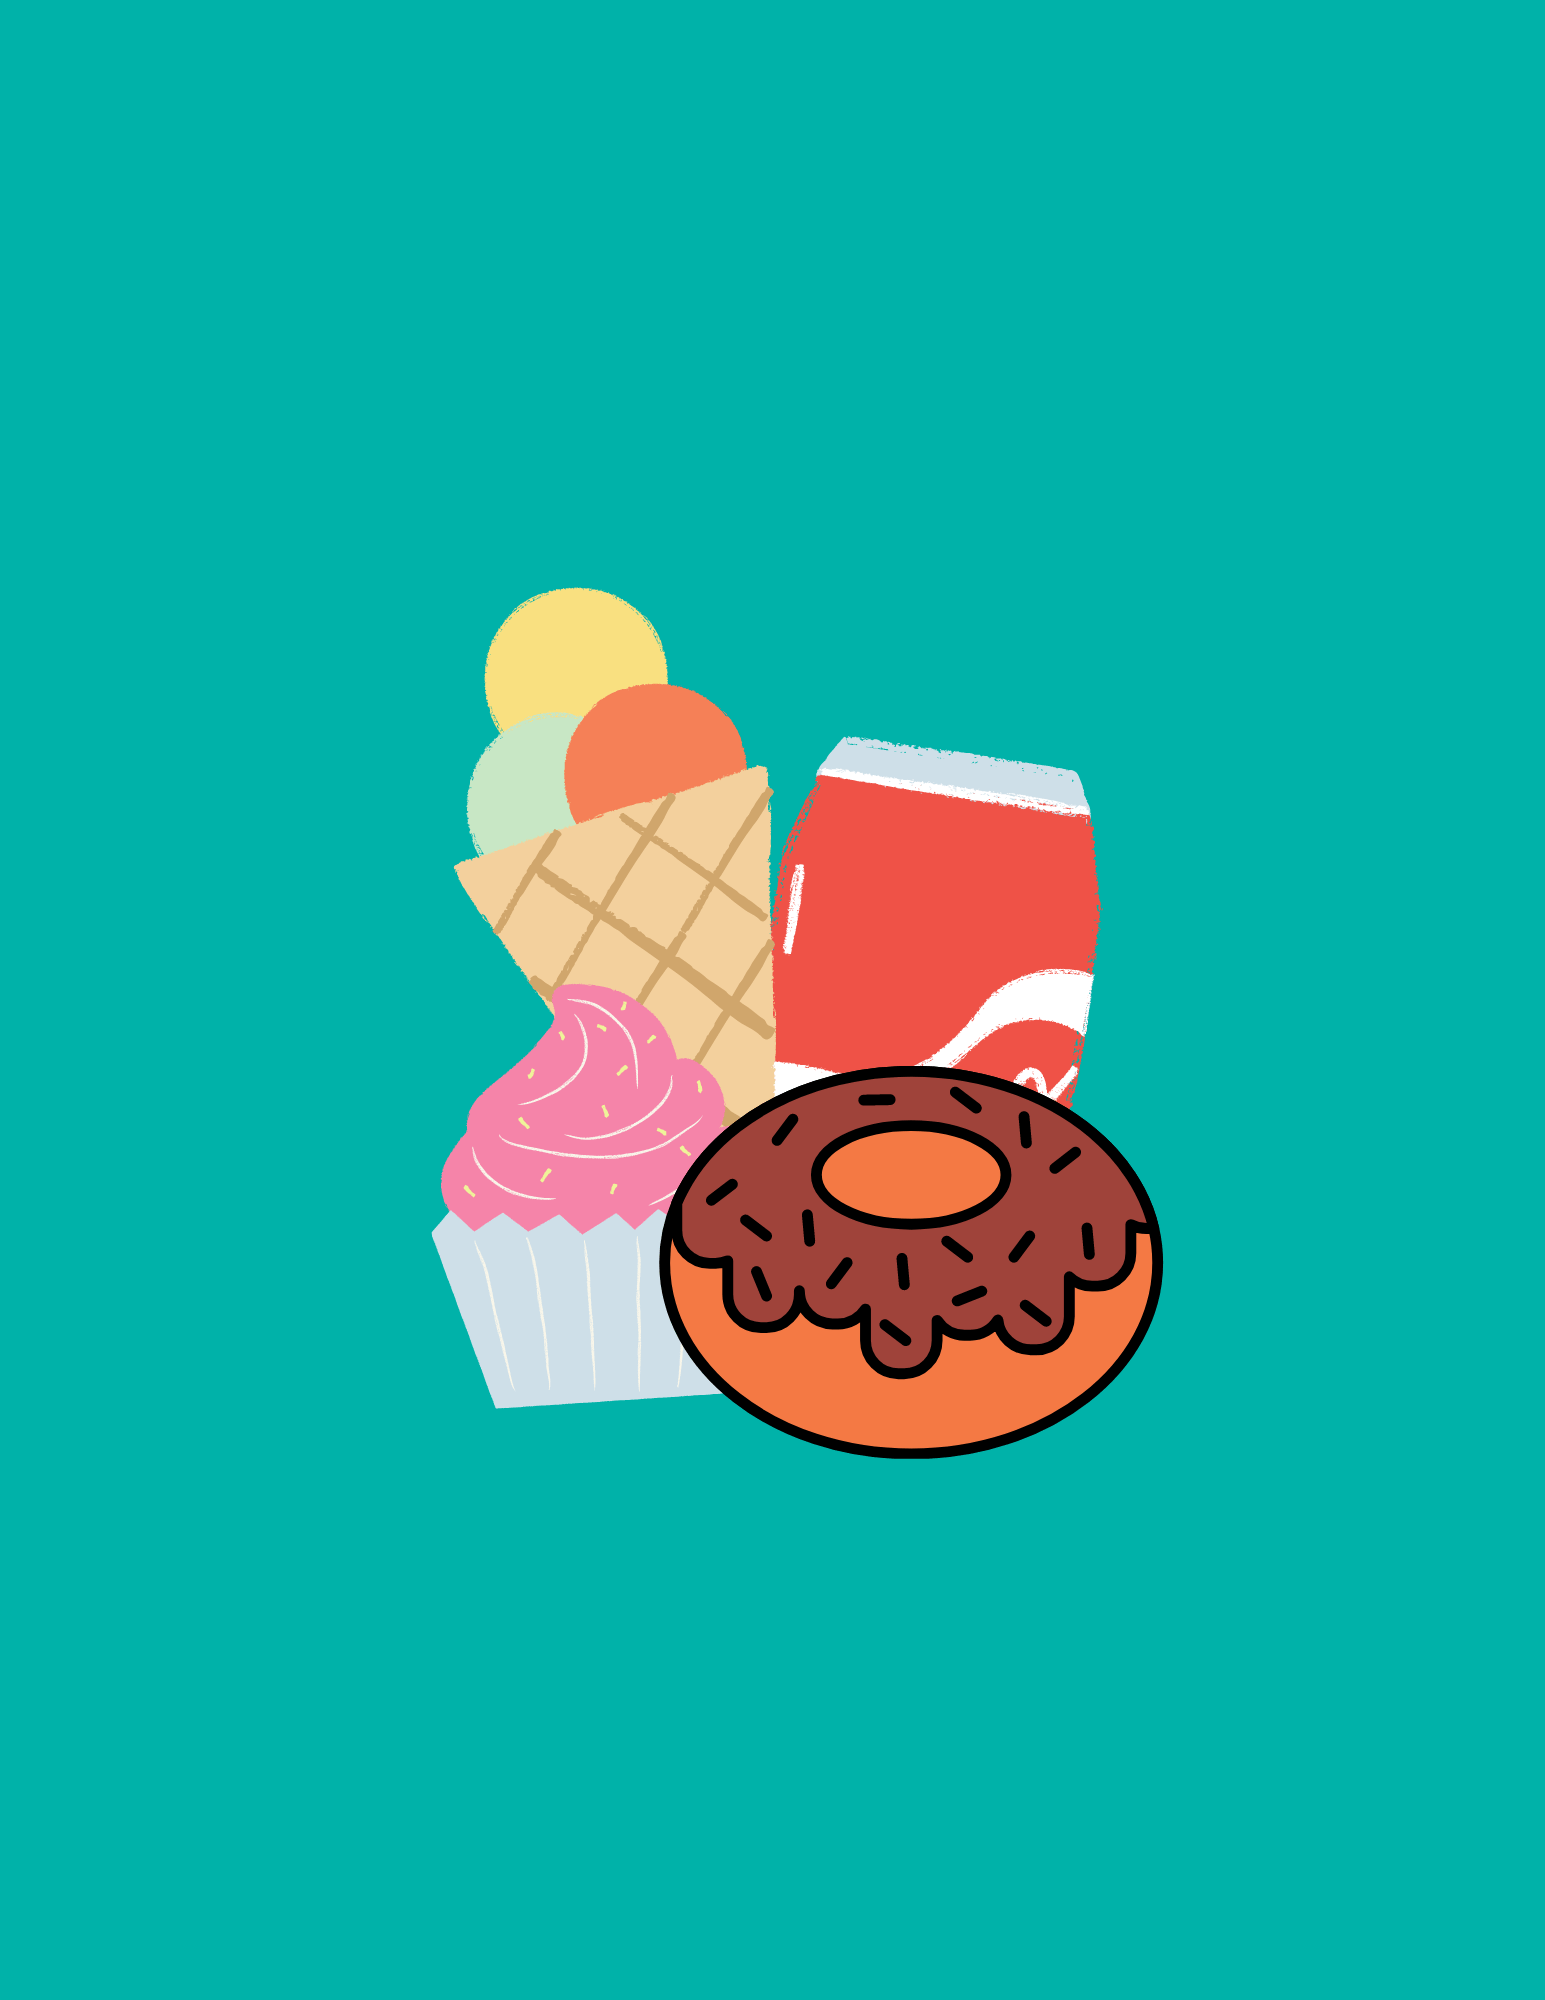 less_sugary_food_beverages